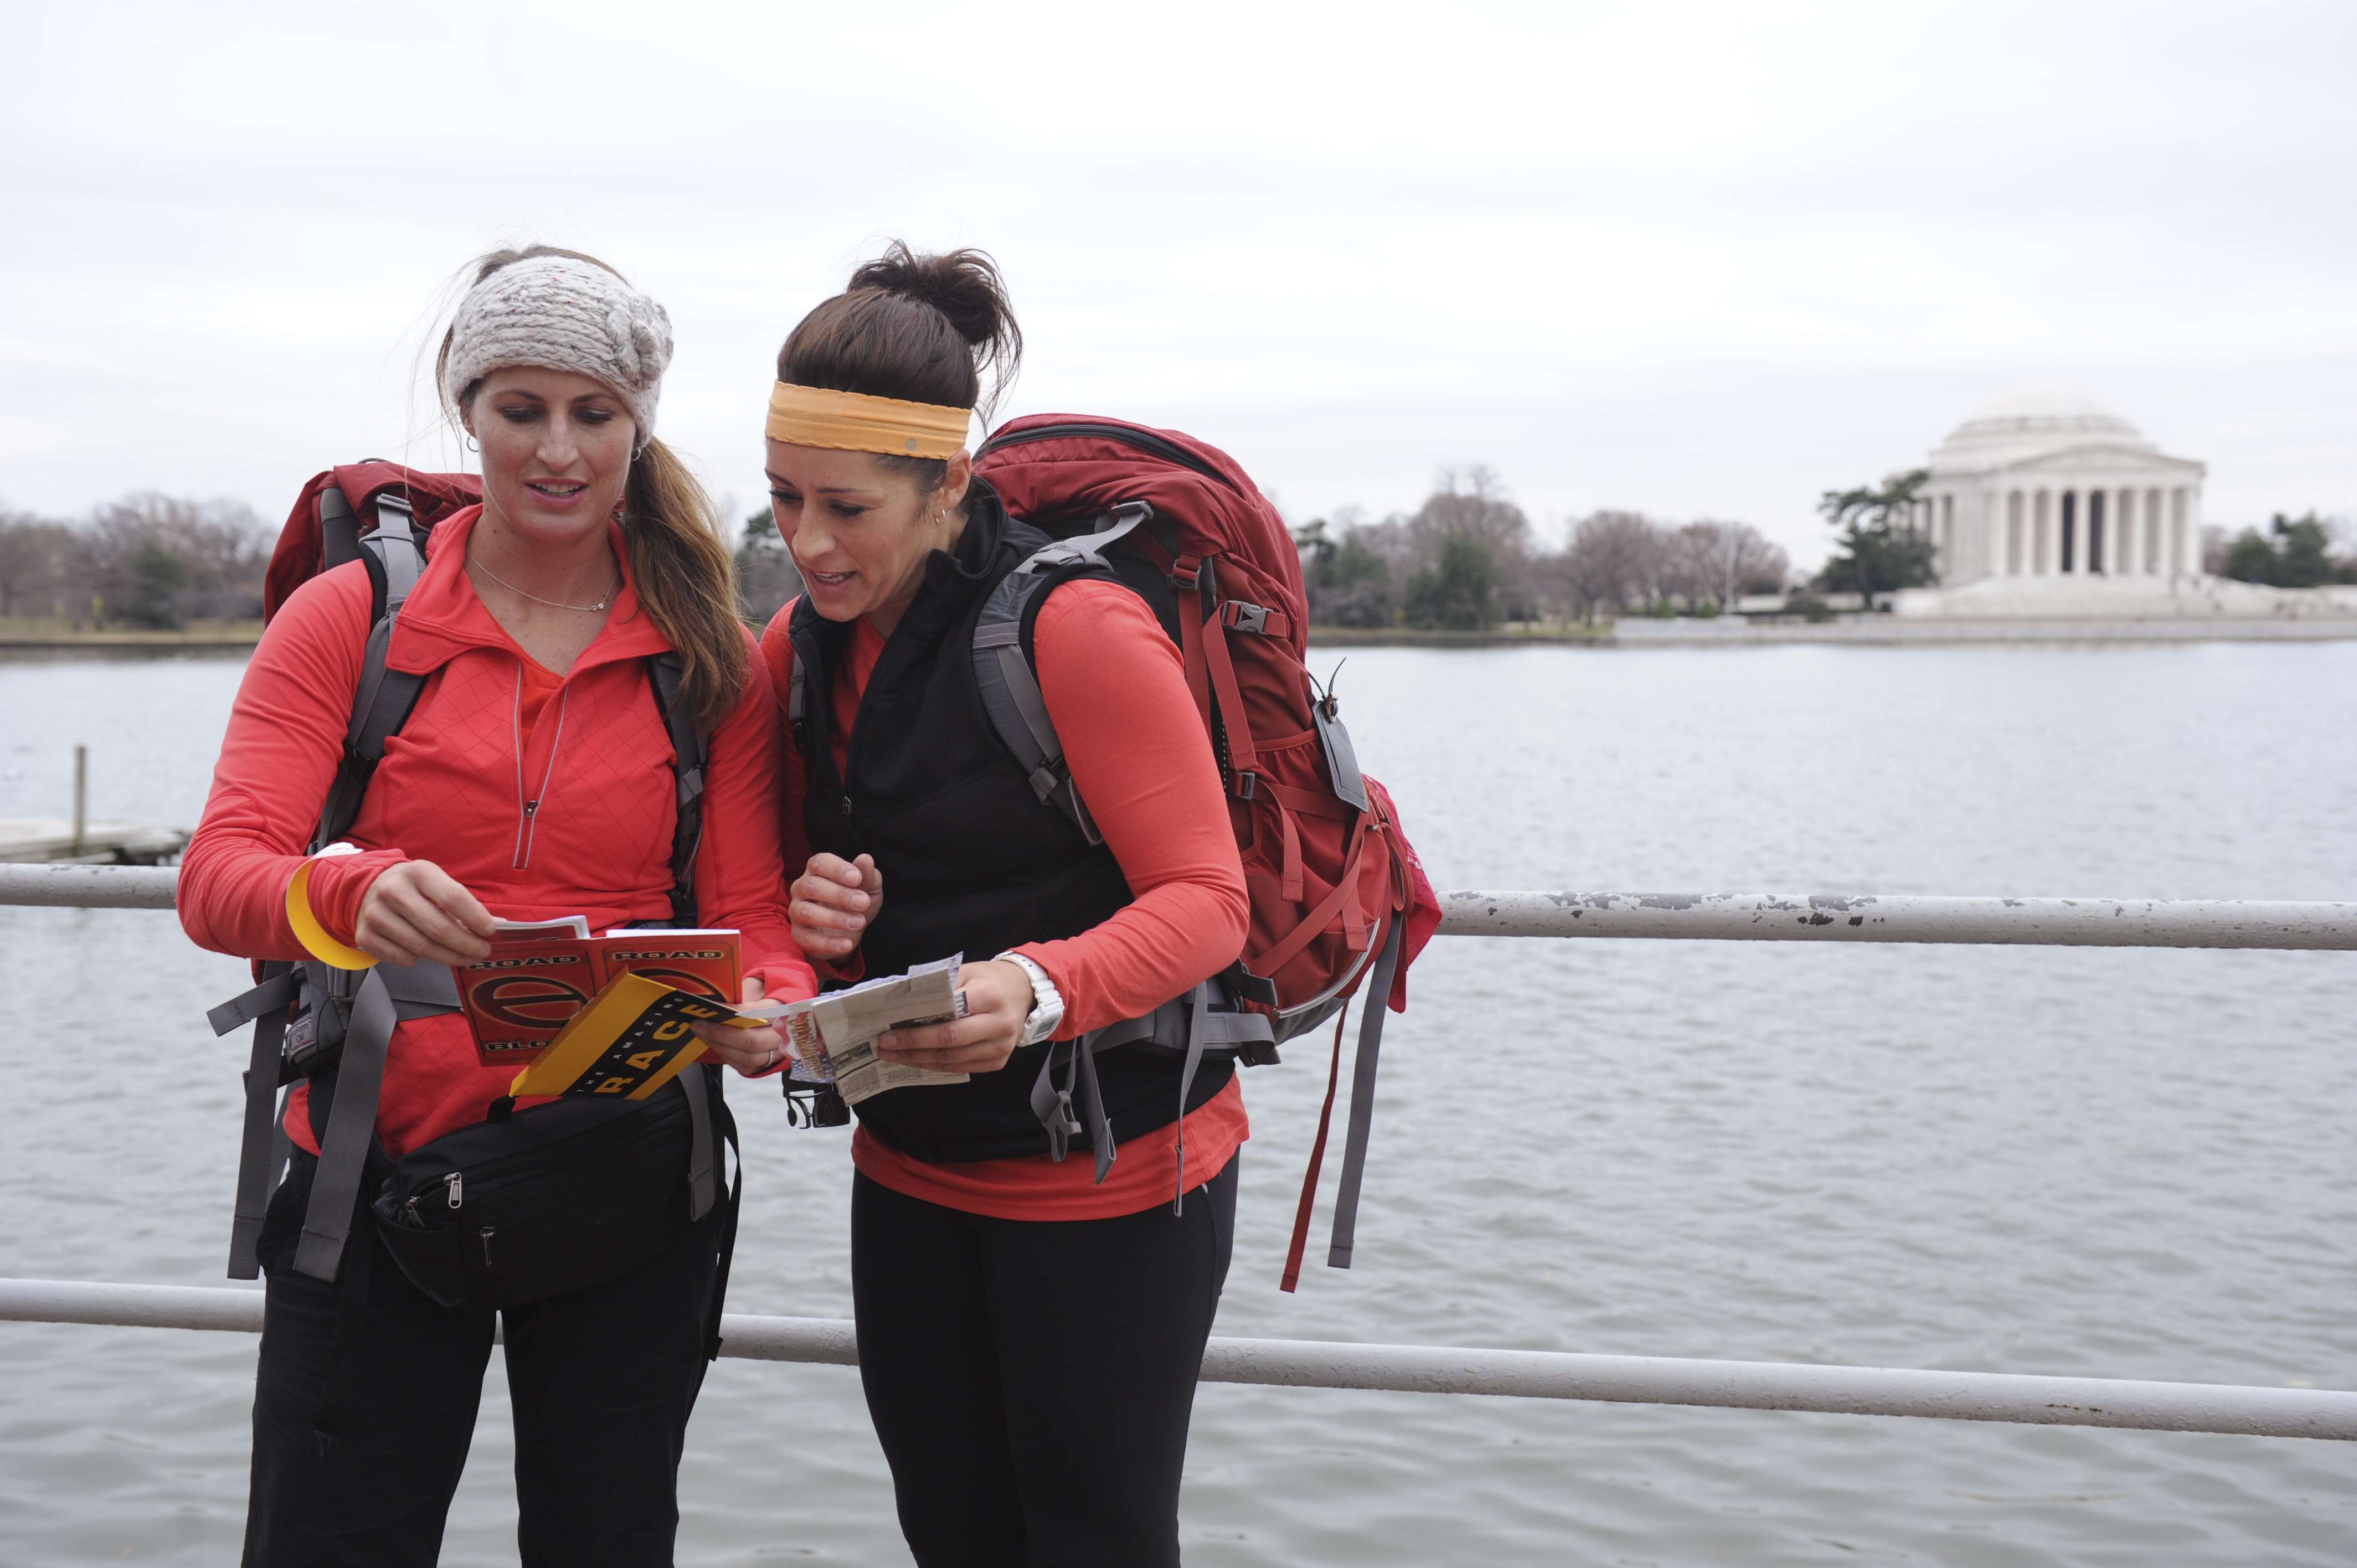 Reading a clue in the season finale of The Amazing Race